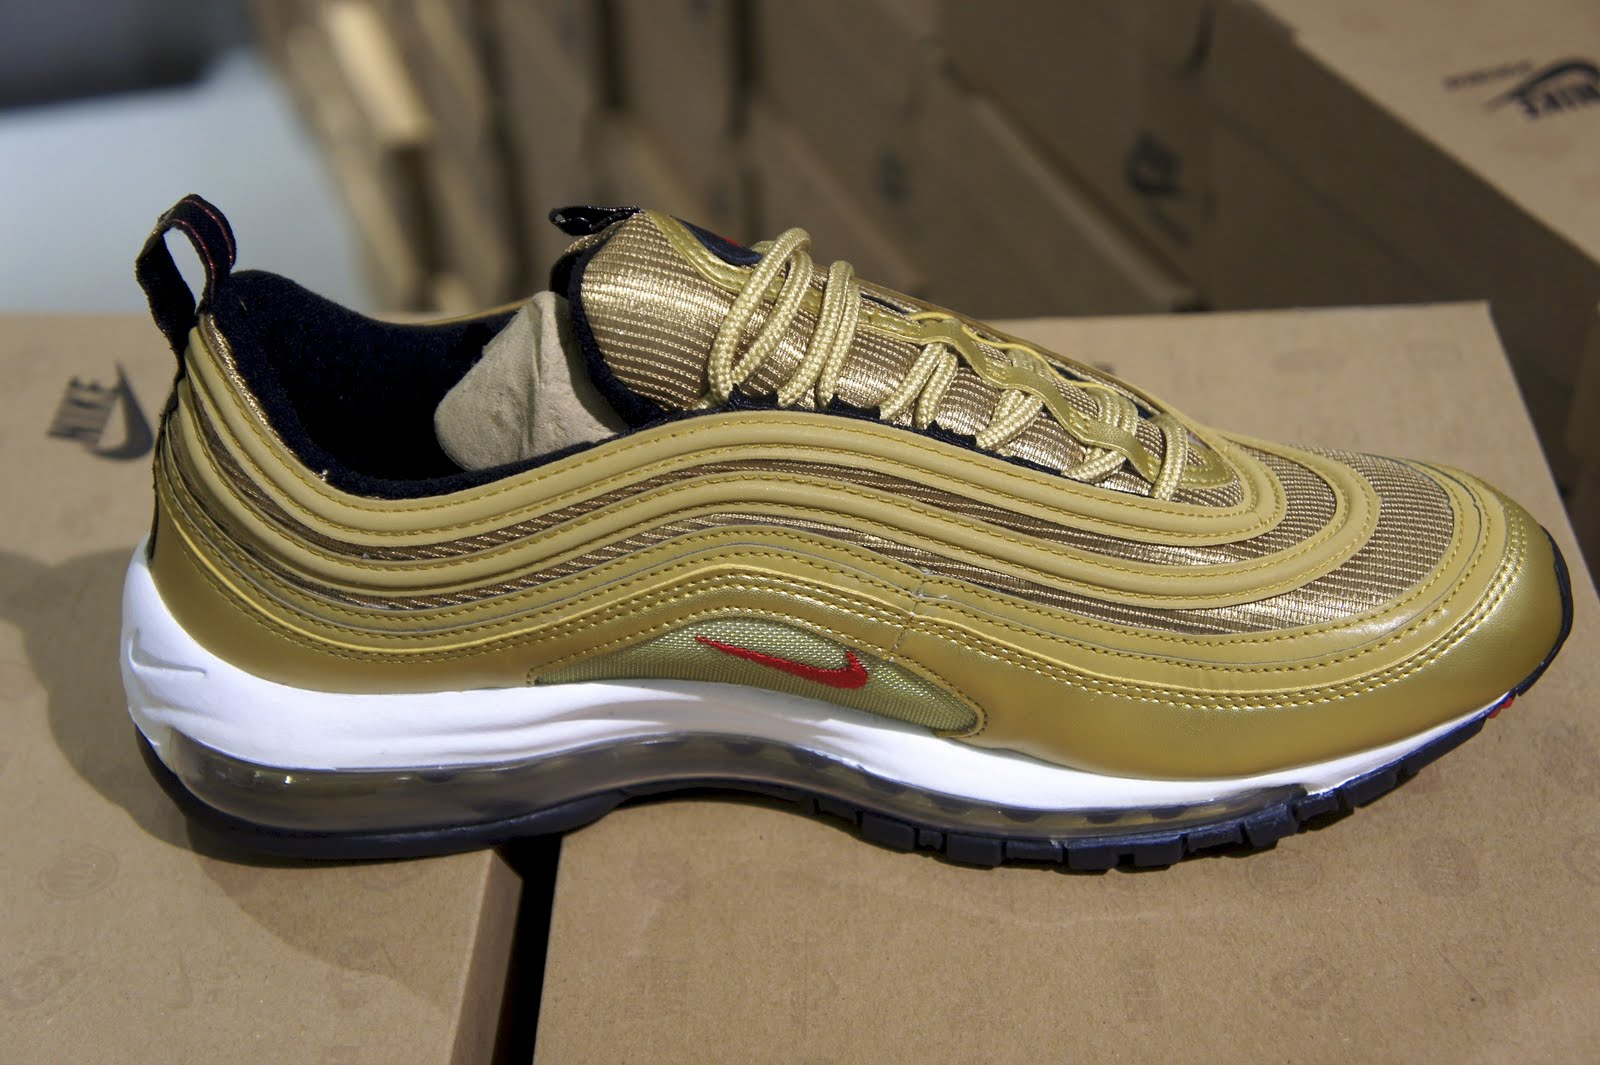 97er air max camouflage